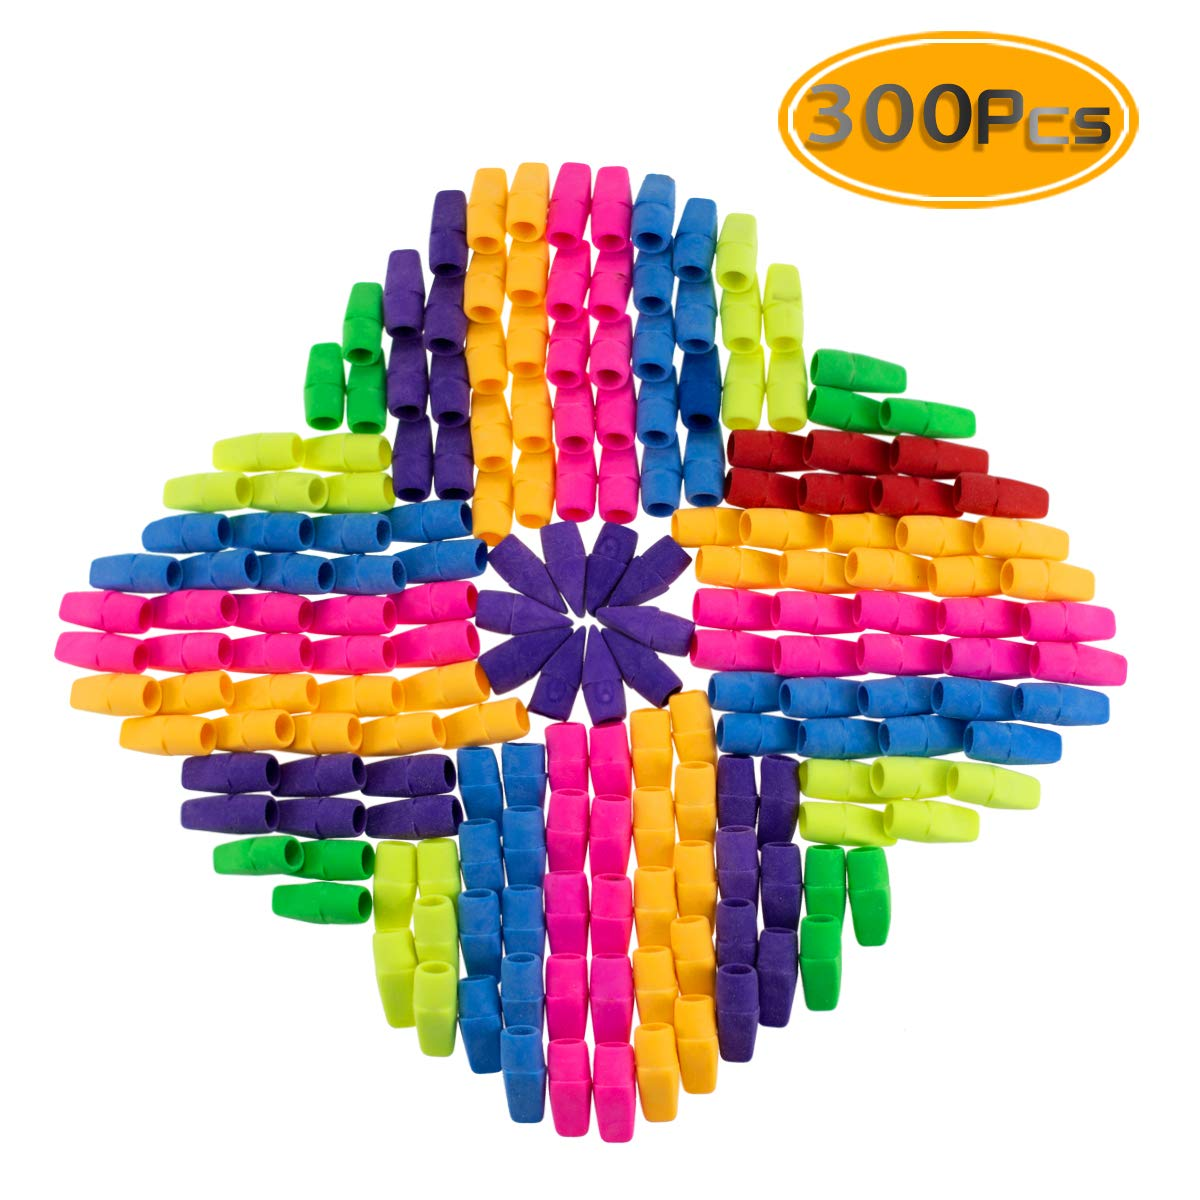 PRALB 300PCS Chisel Shape Pencil Eraser Caps, Pencil Erasers Assorted Colors For Party Favors Games Prizes Pen Cap Toppers Pencil Top Erasers Cap Erasers Eraser Tops Pencil Eraser Toppers School Erase